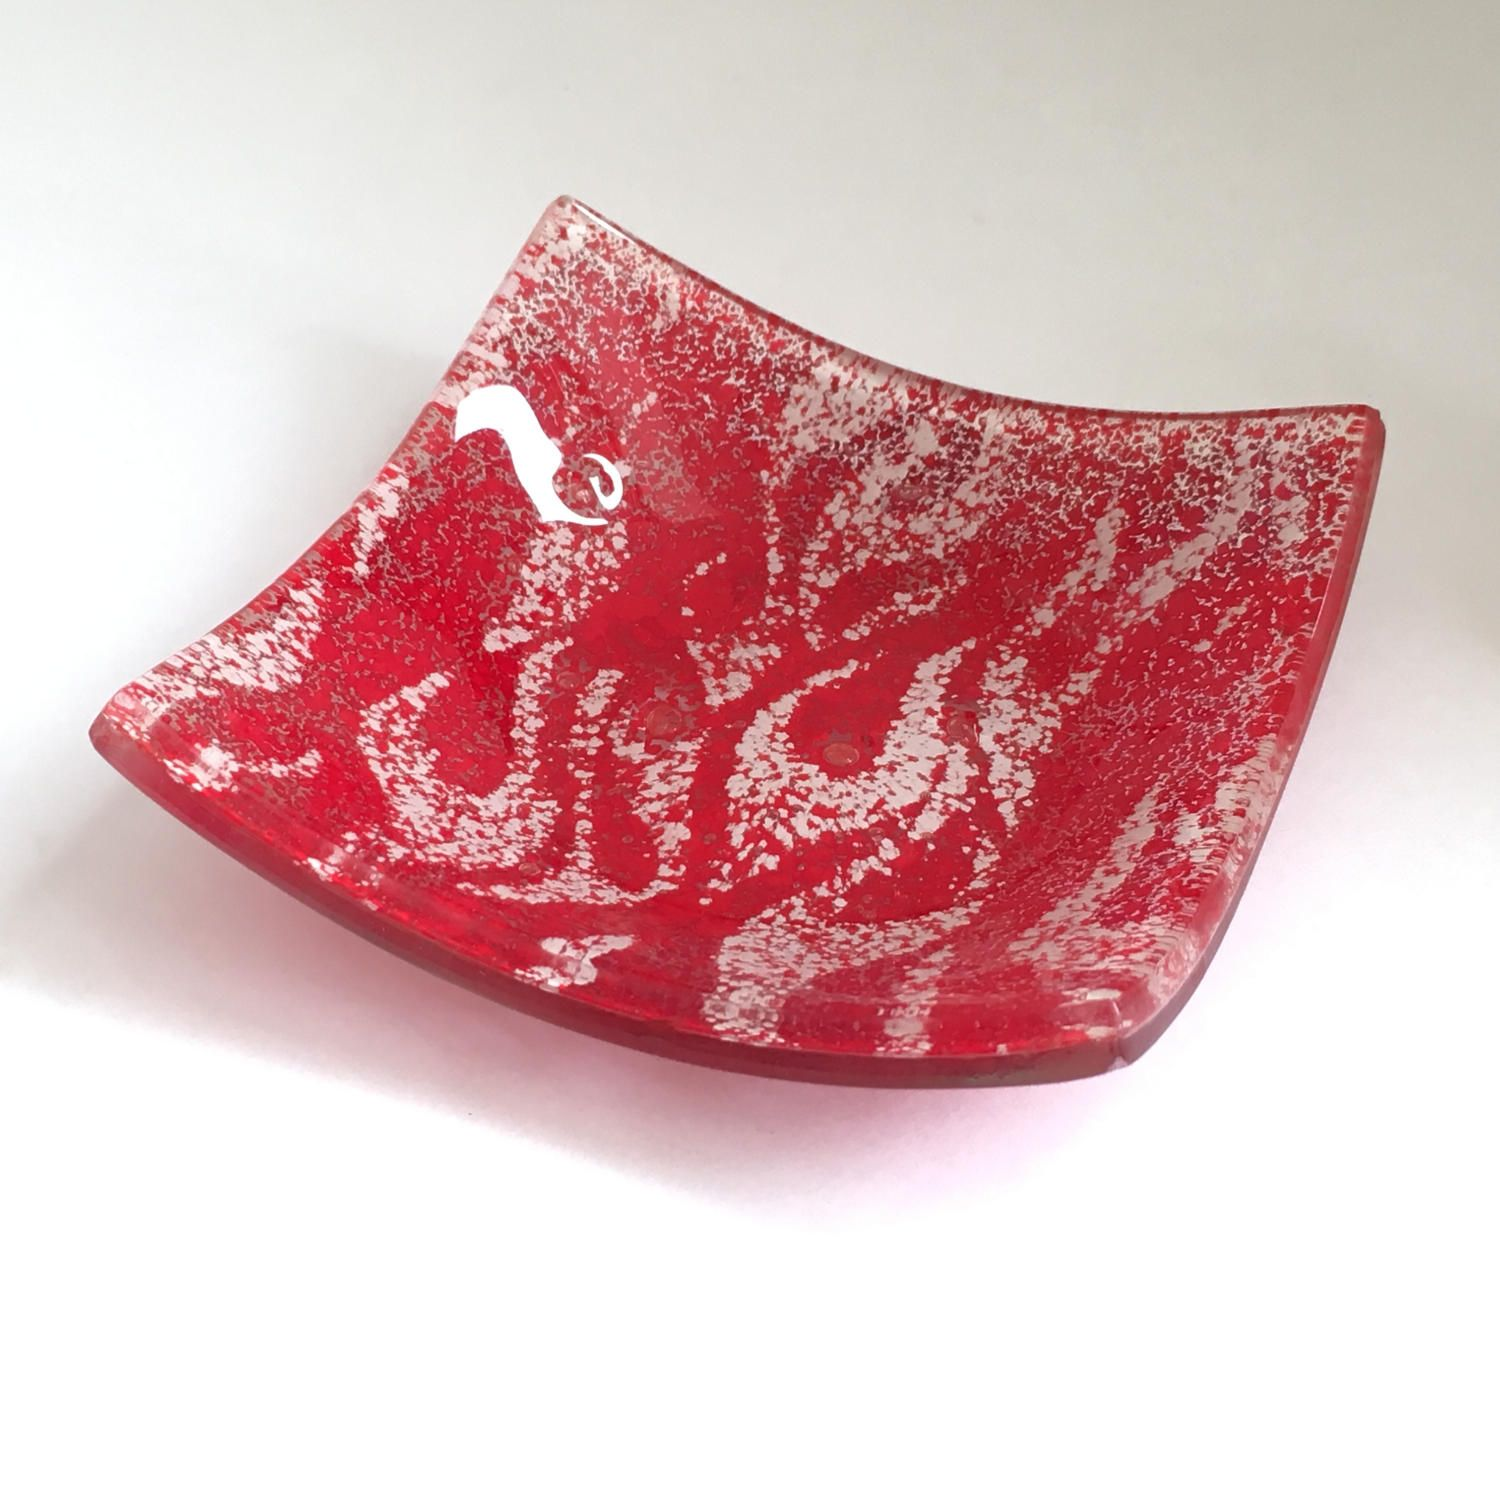 Red Fused Glass Trinket Dish - Ring Dish - Jewellery Dish - Red dish - Tea Light Dish - Ring Holder Dish - Glass Votive Holder - ED 587 by FiredCreationsGlass on Etsy